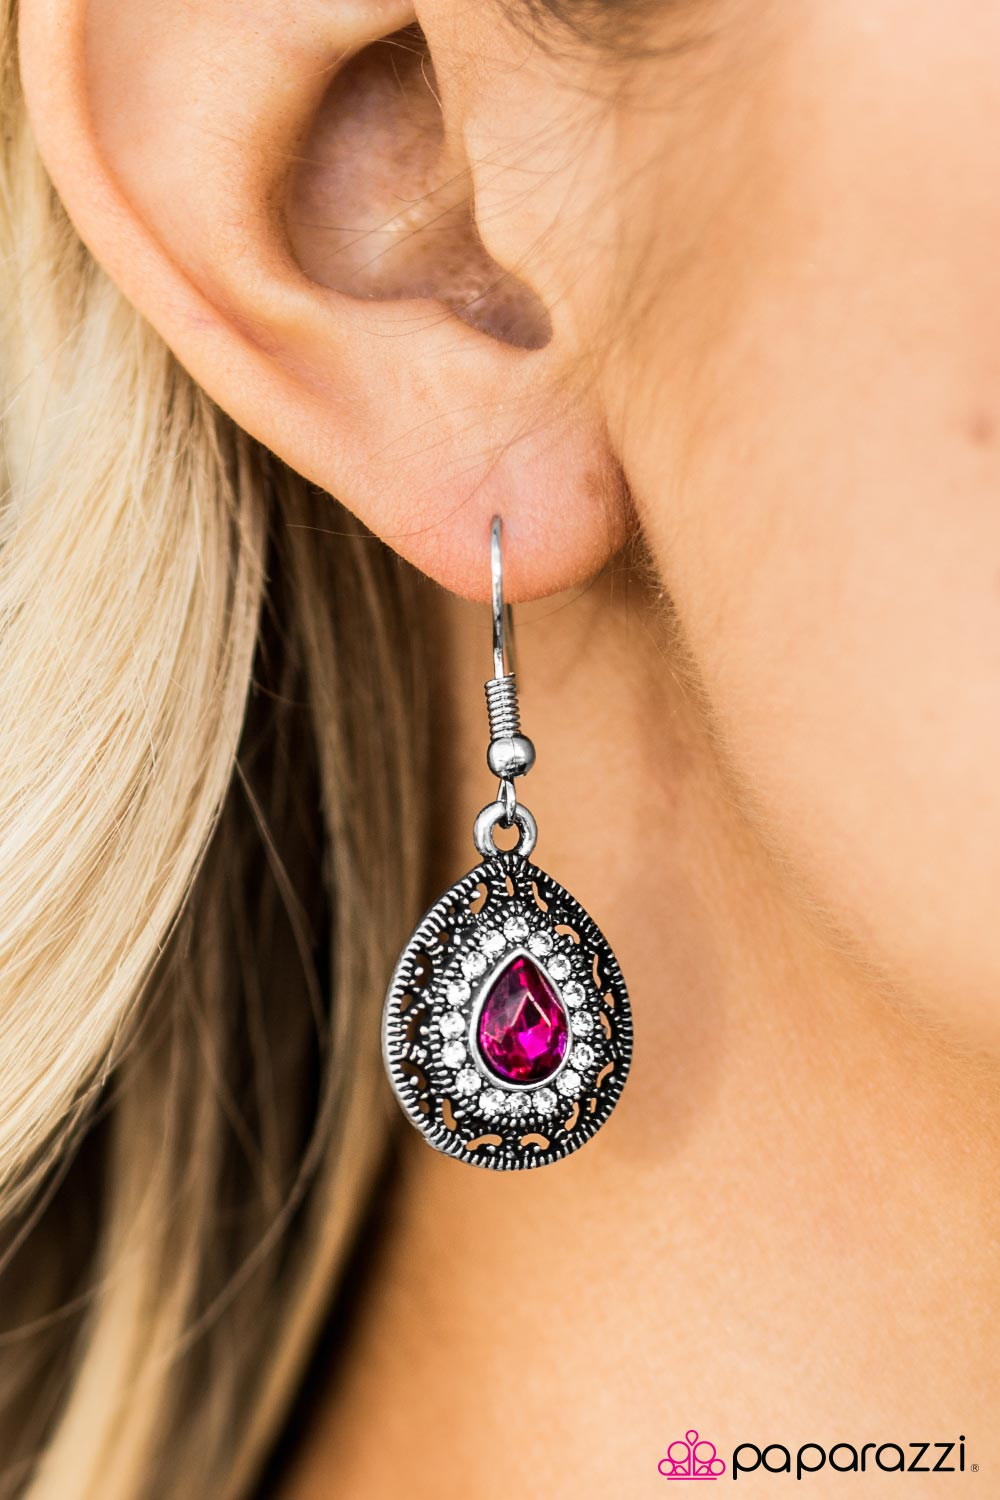 Falling In LOUVRE With You - Paparazzi earrings